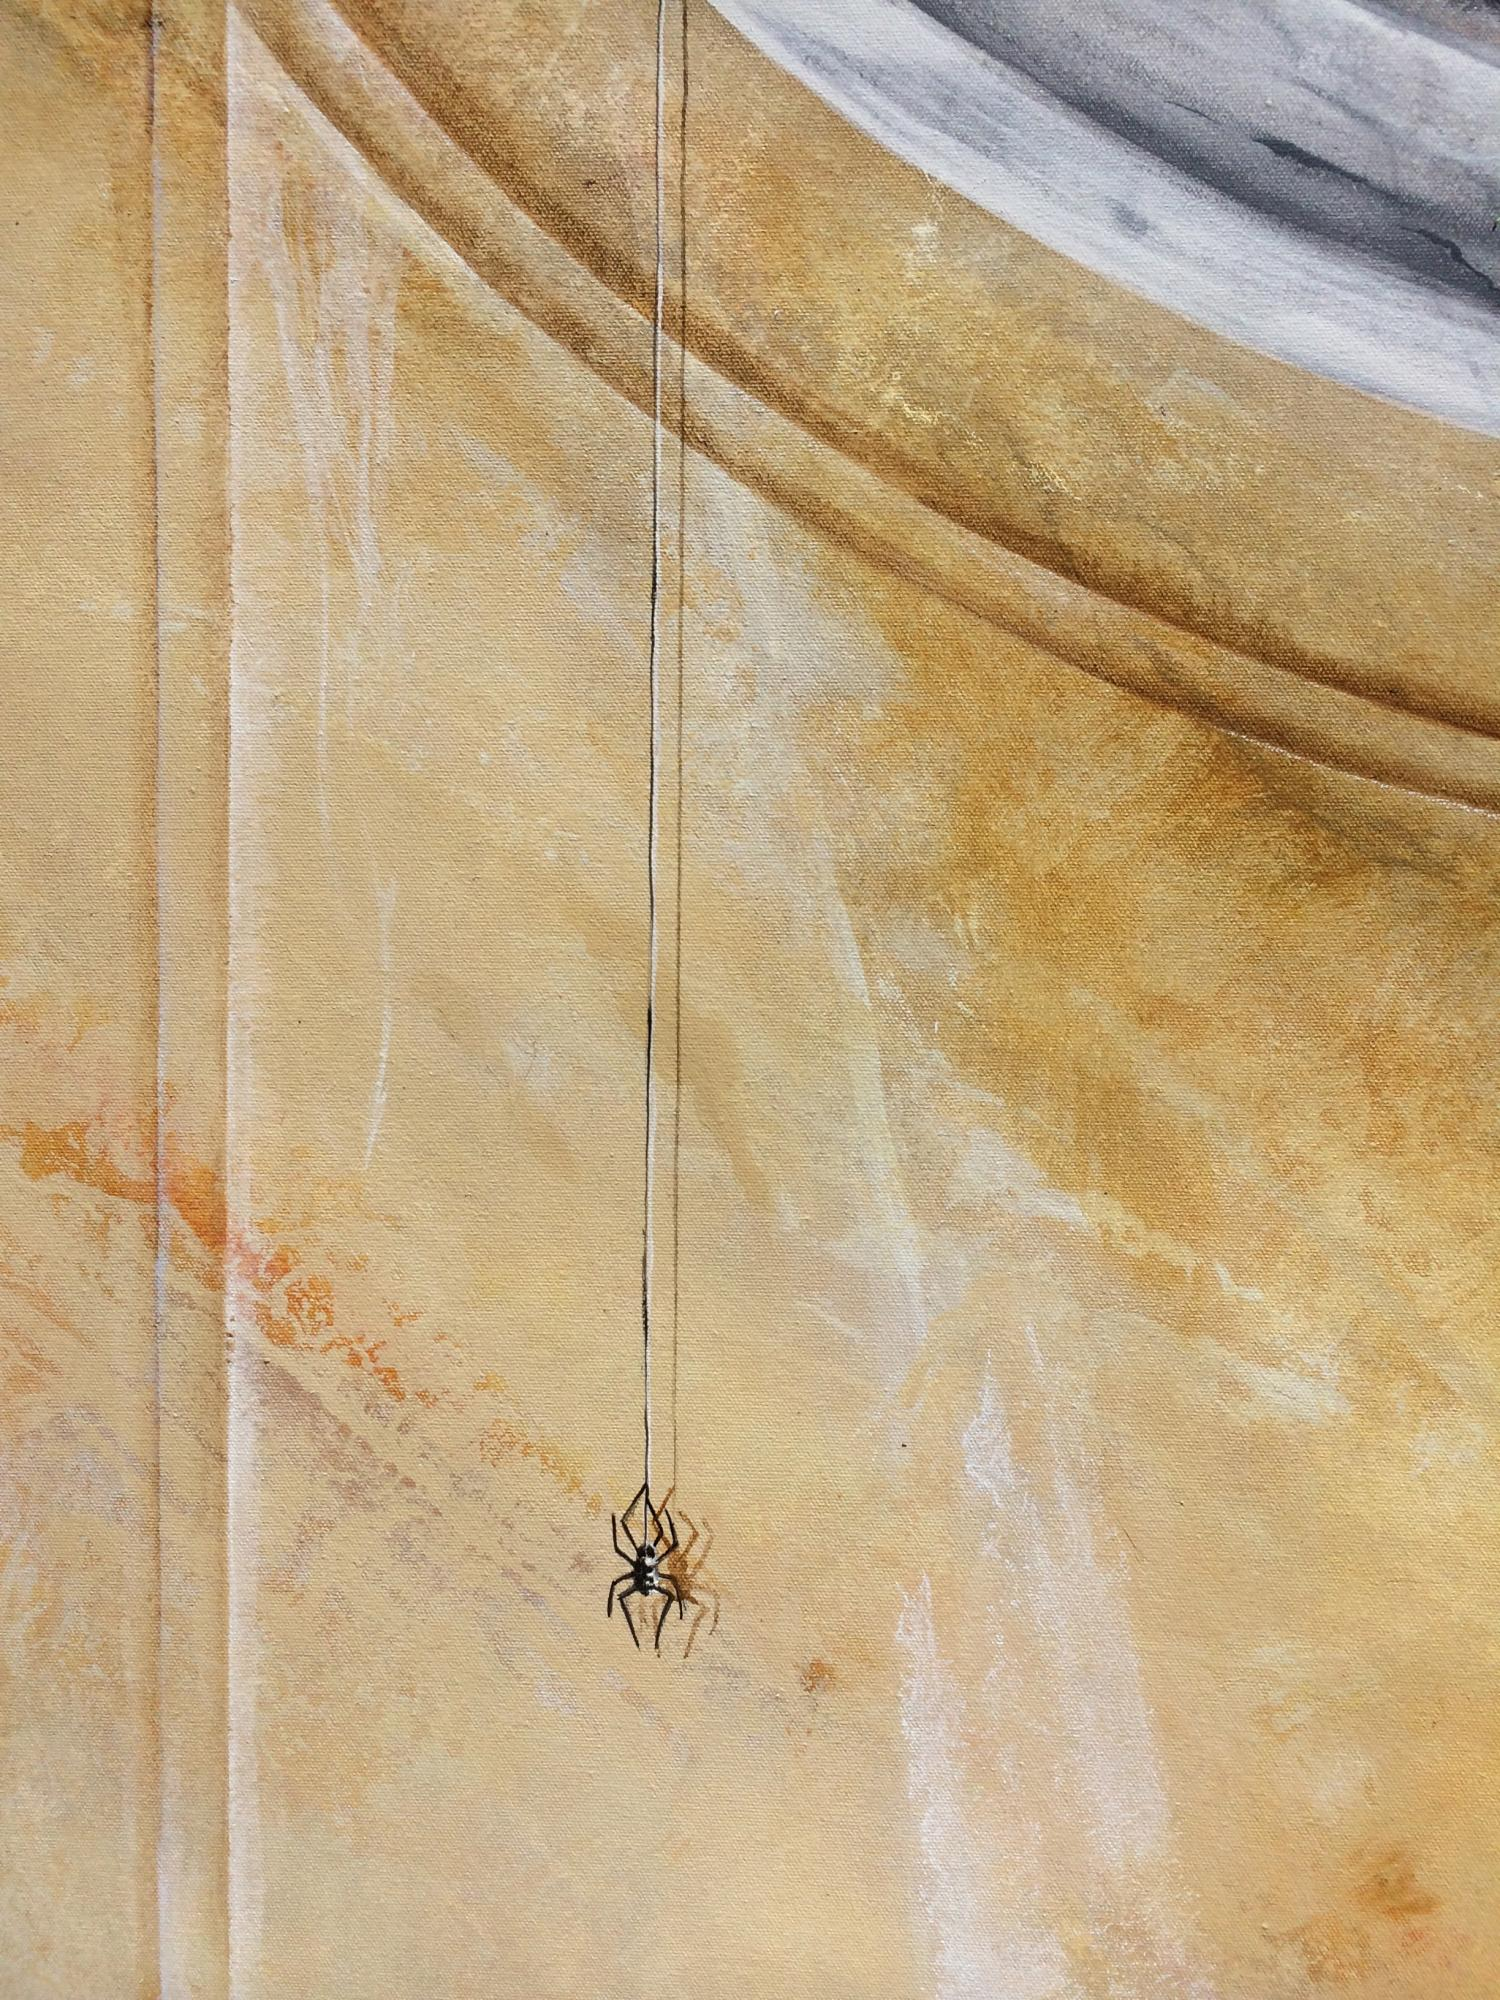 Spider on Faux Marble Trompe Loiel